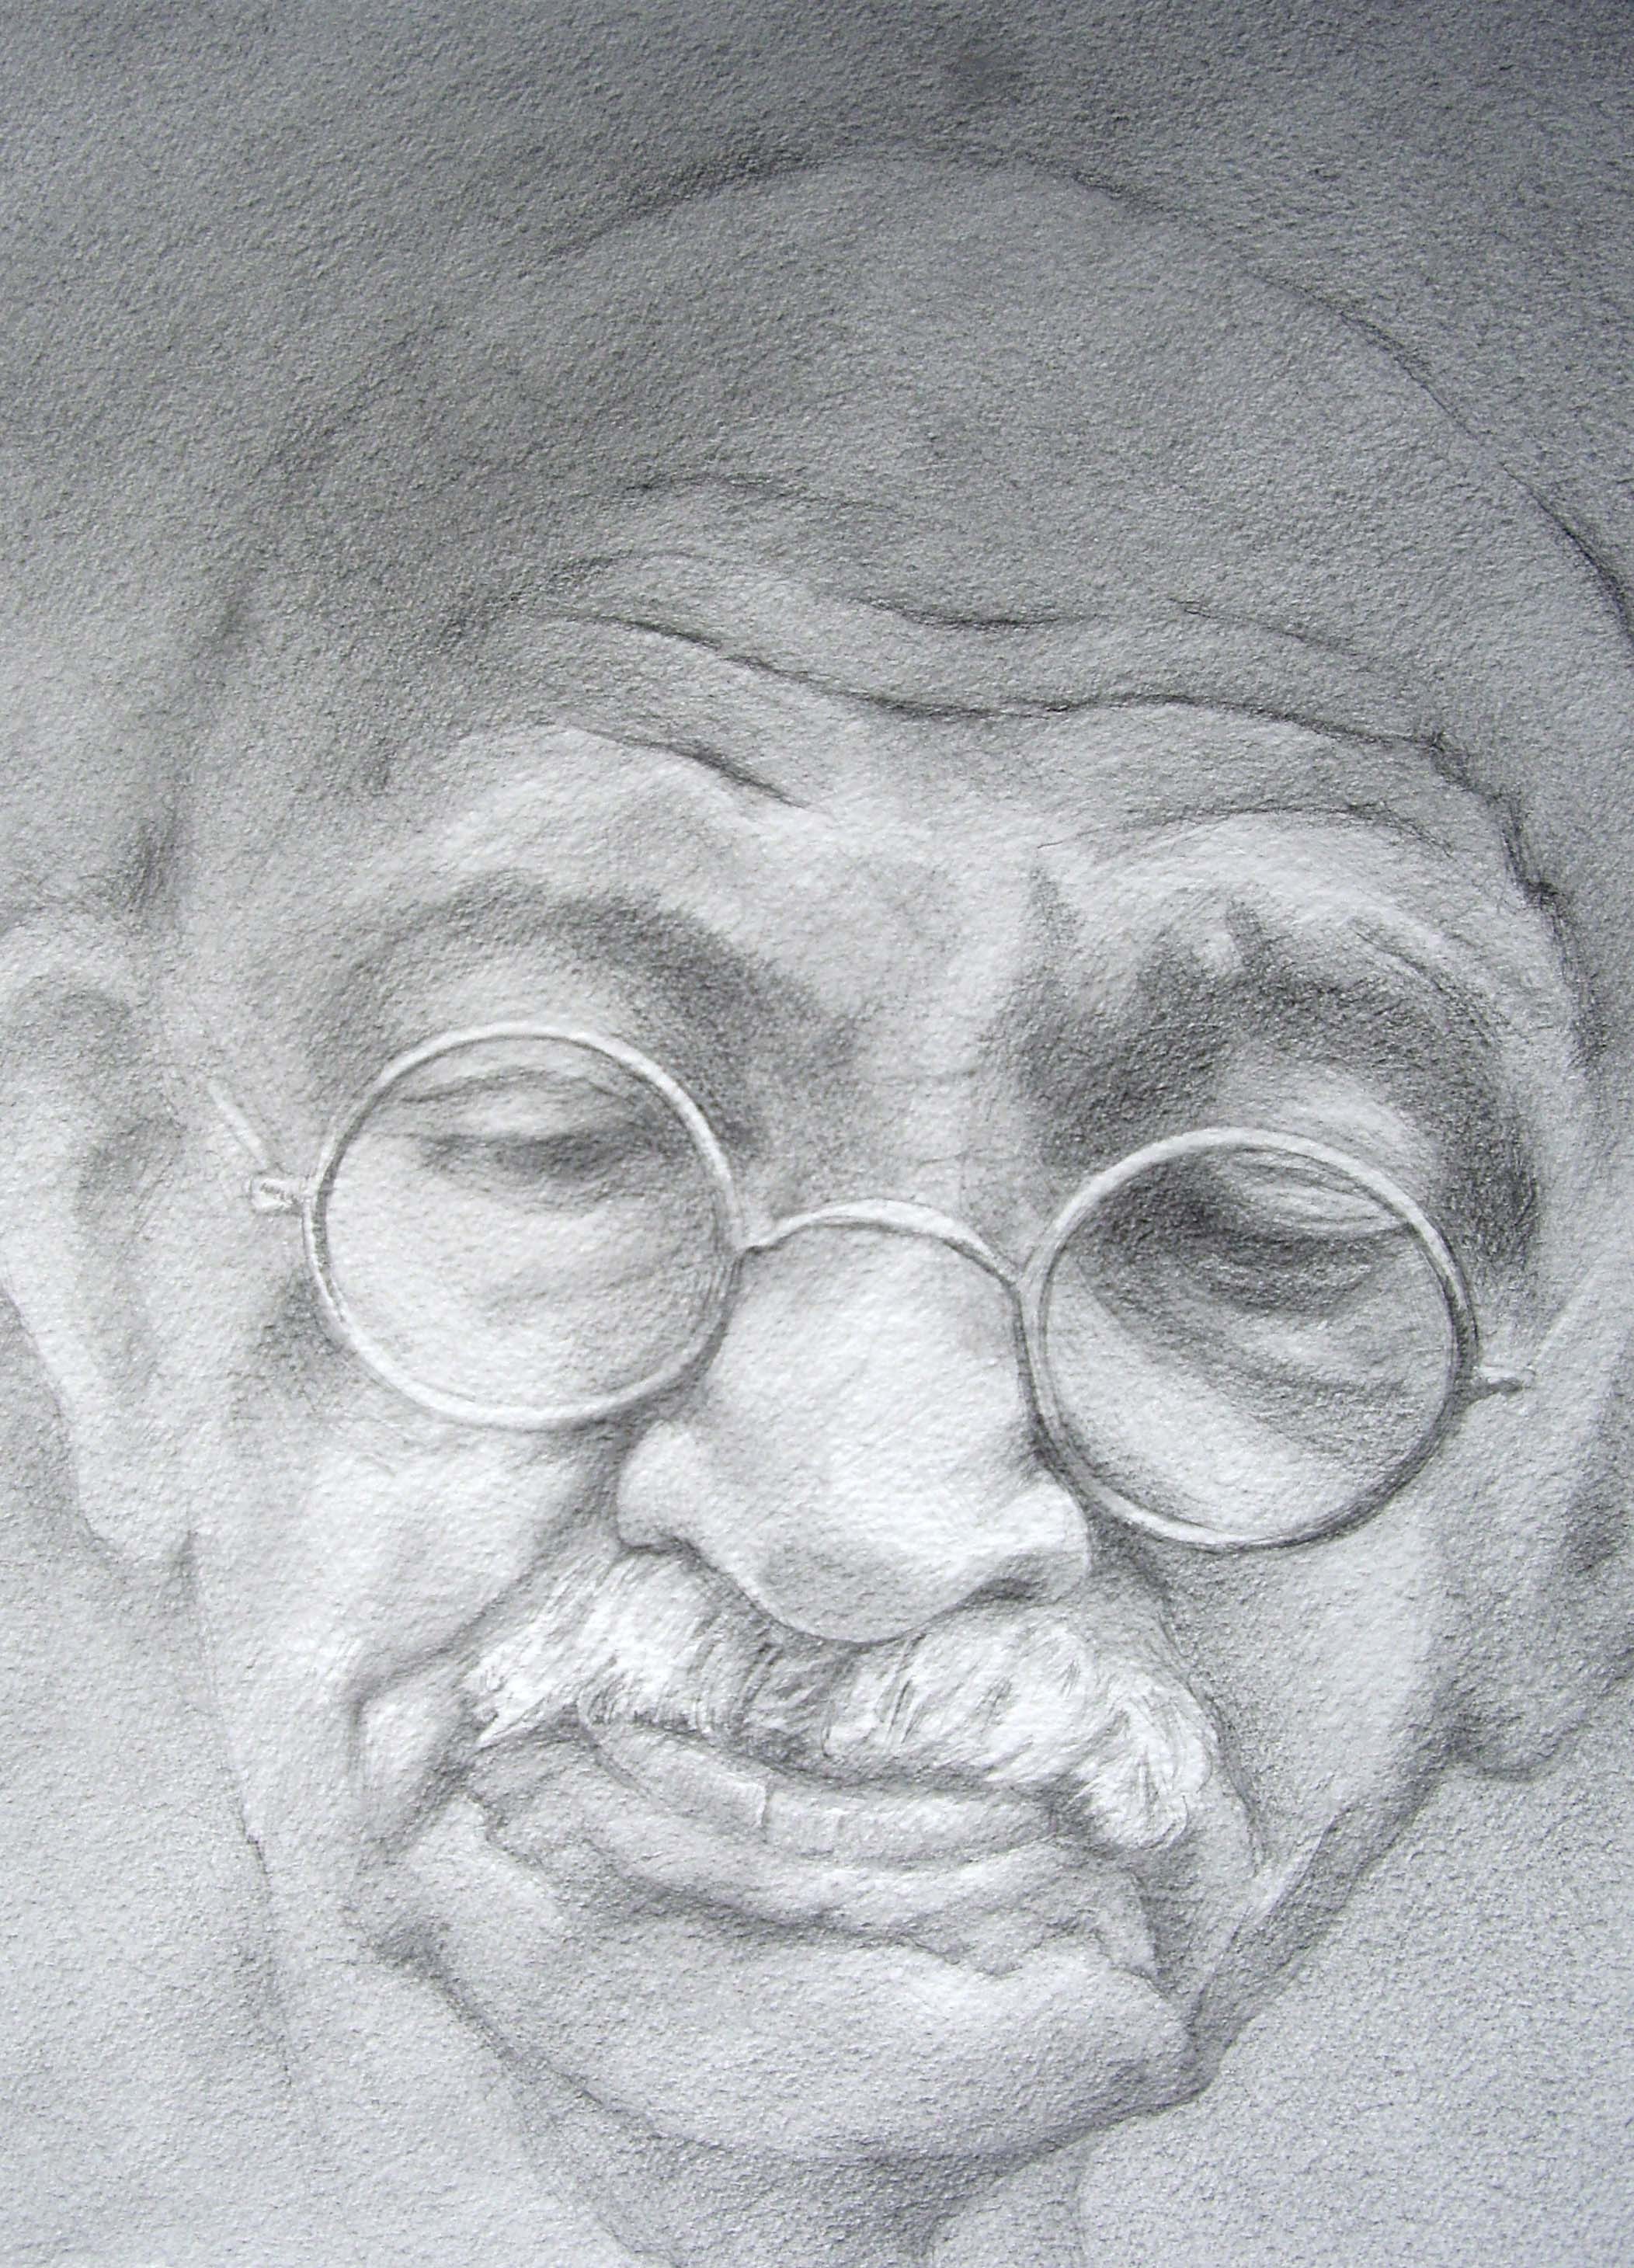 Gandhi Deep in Meditation